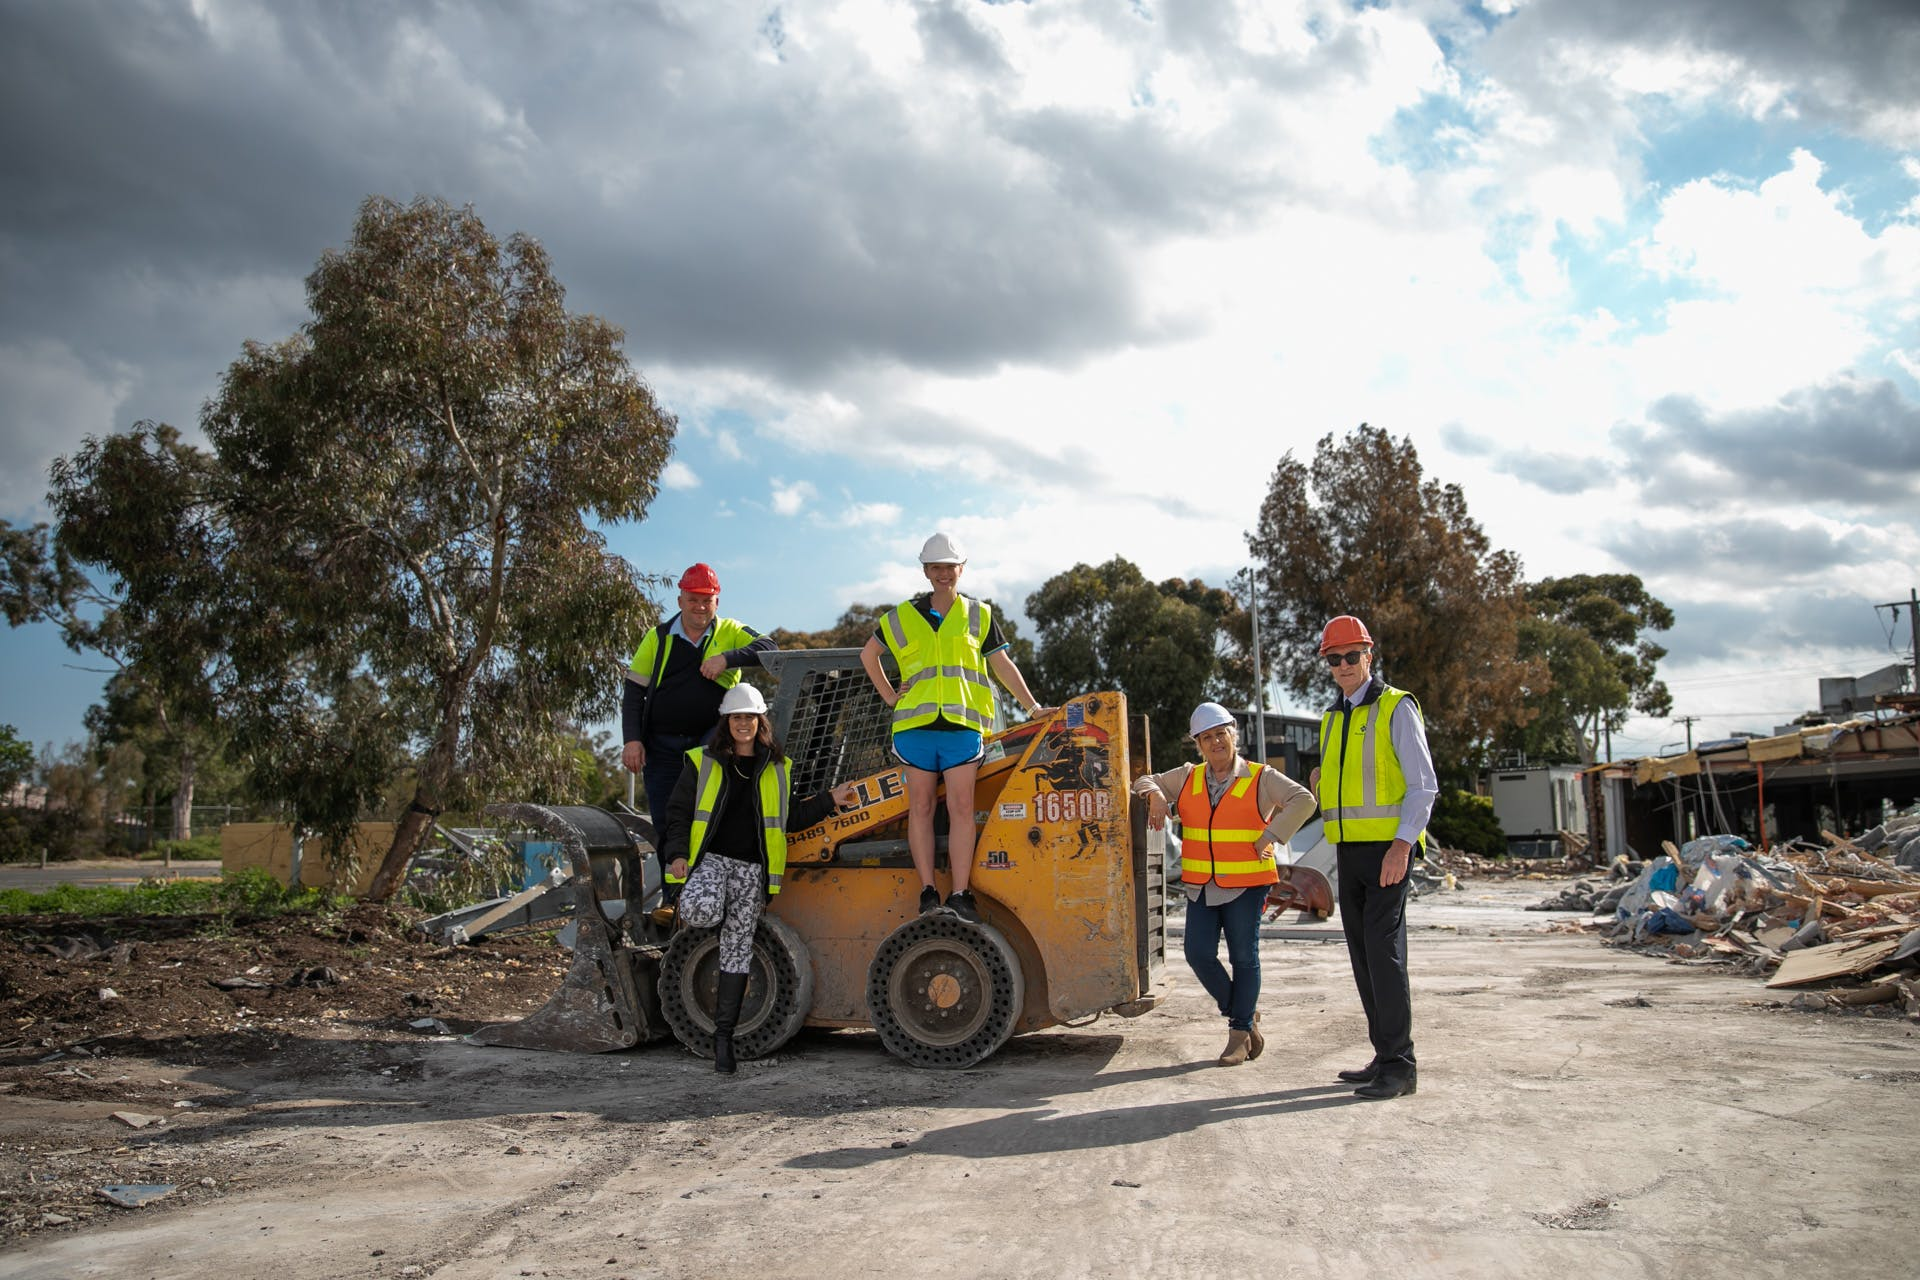 Mayor Cr Narelle Sharpe, Deputy Mayor Cr John Sipek, Crs Samantha Byrne and Andrea Surace, and CEO Bryan Lancaster attend the site to see construction progress in October 2019.